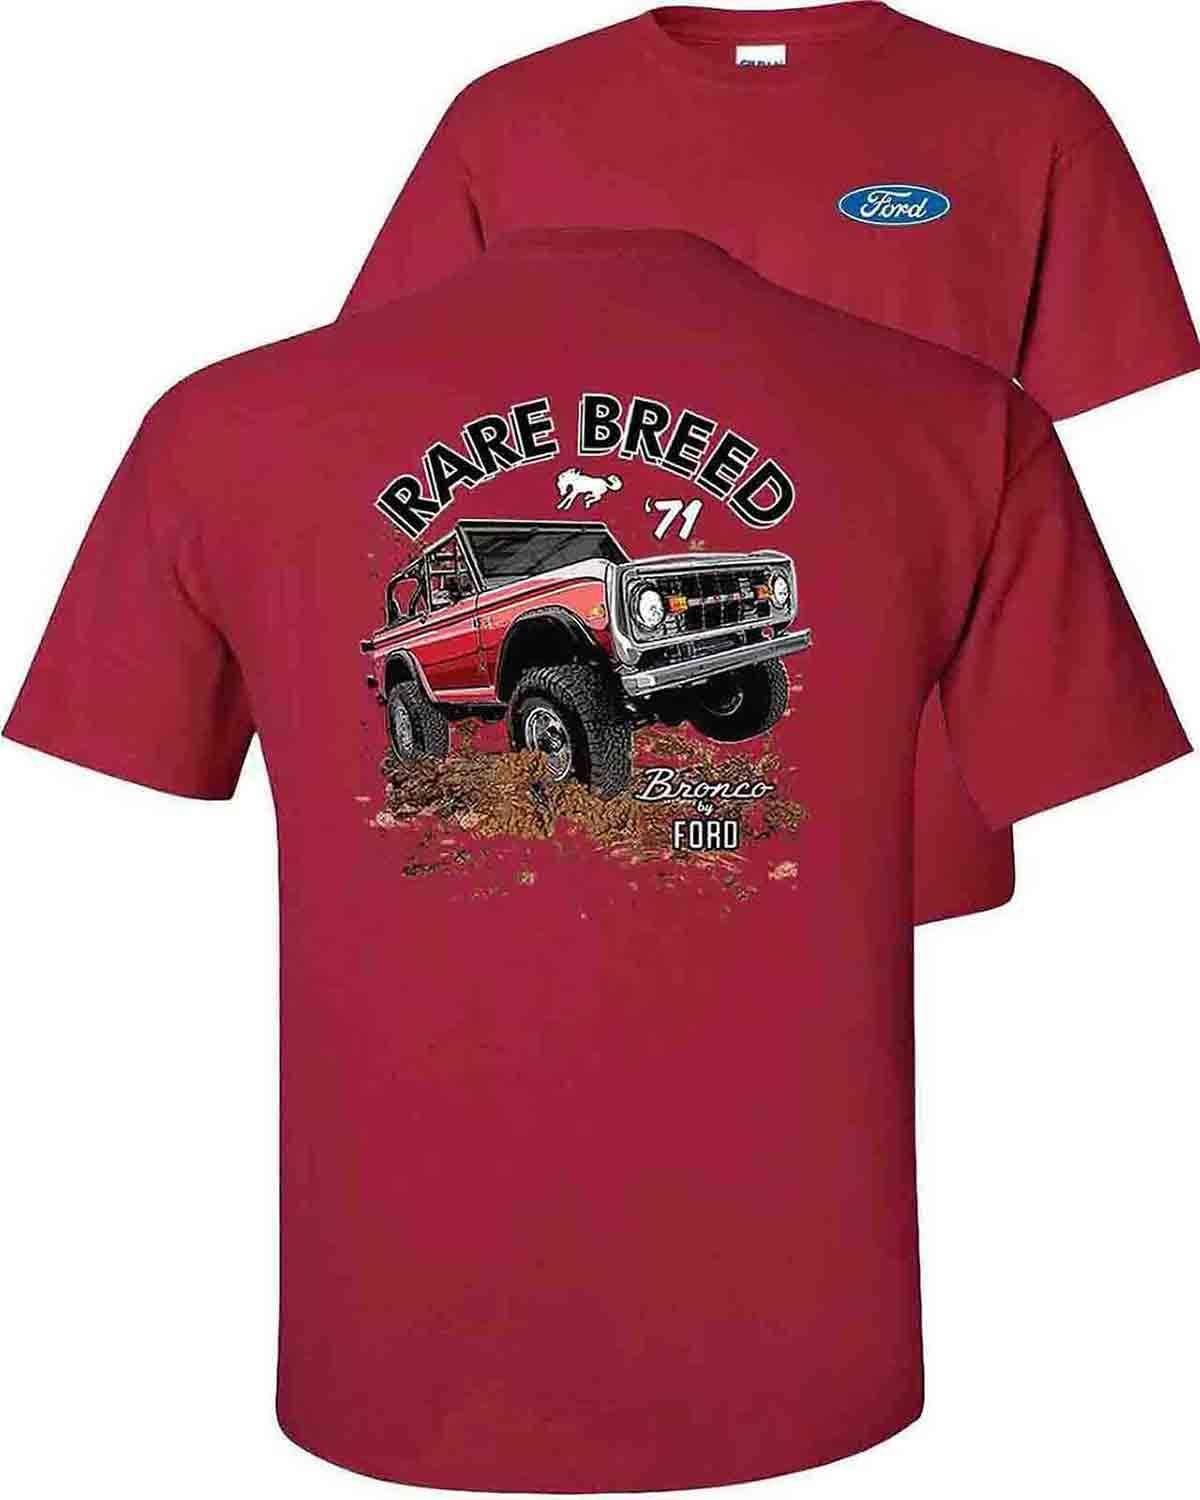 rare-breed-71-bronco-by-ford-t-shirt-cardinal.jpg